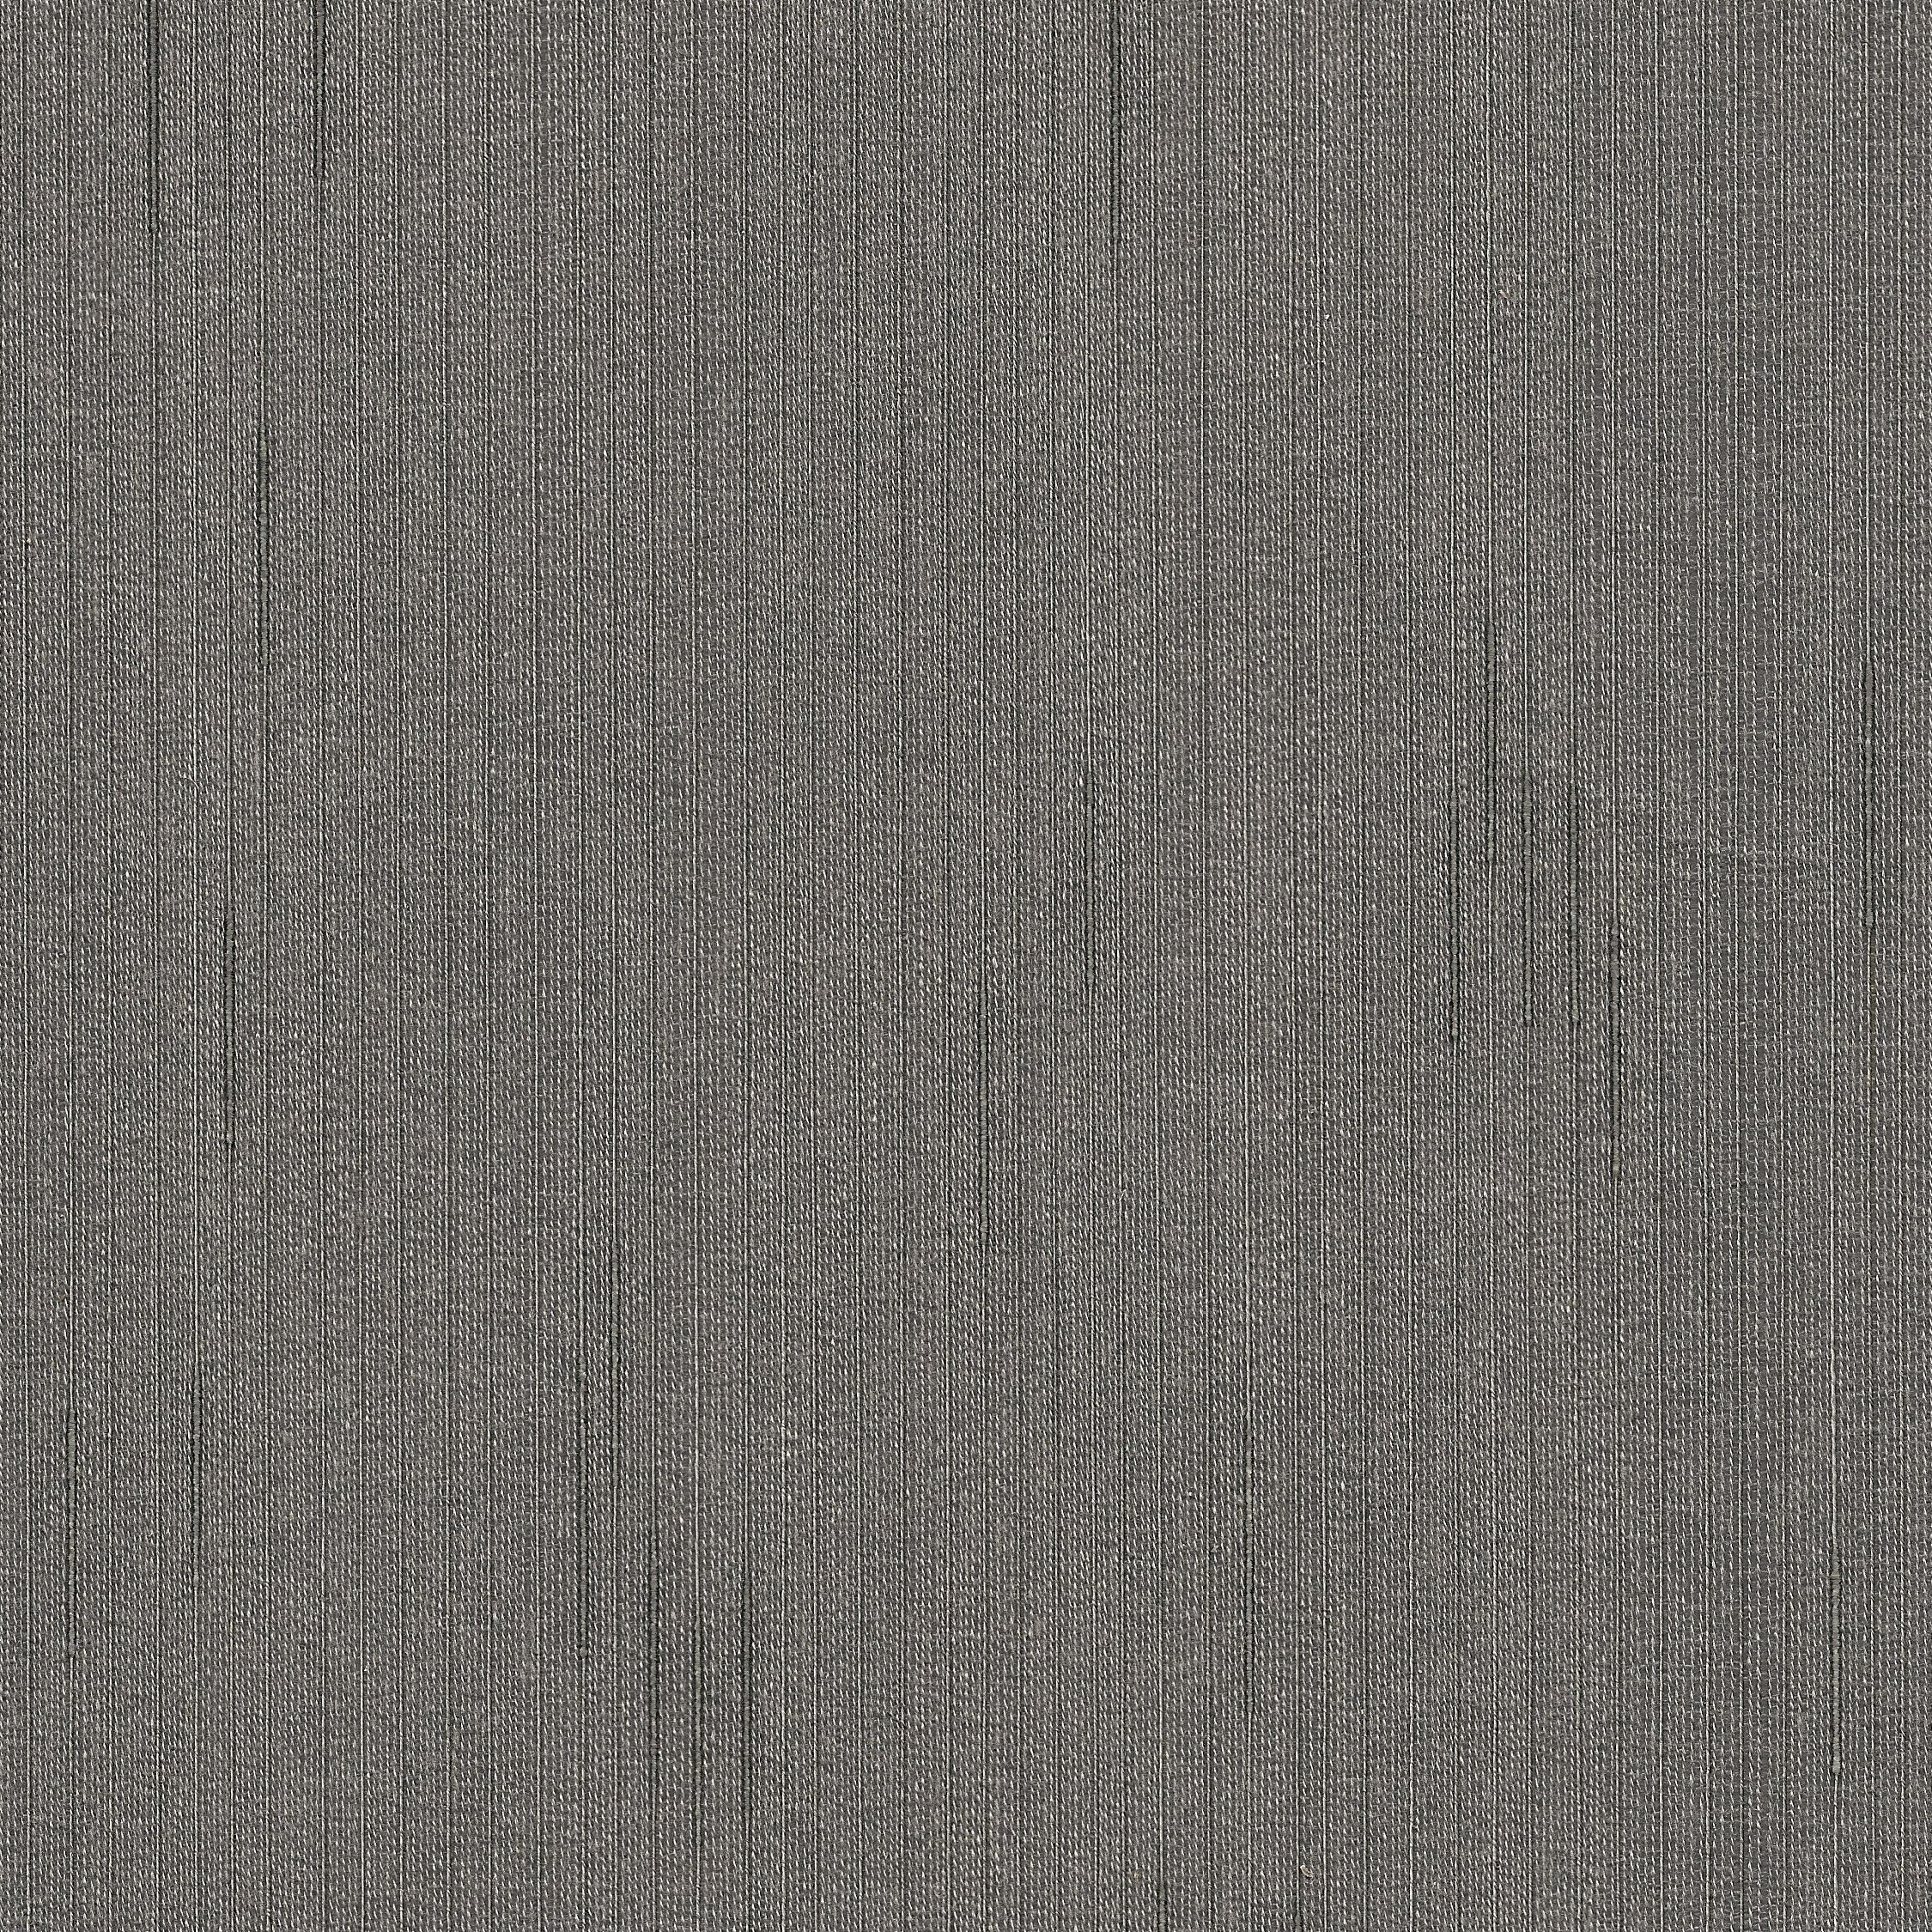 Vertical Grasscloth Wallpaper: The #Silky Strings Collection Of Wallcoverings Is An